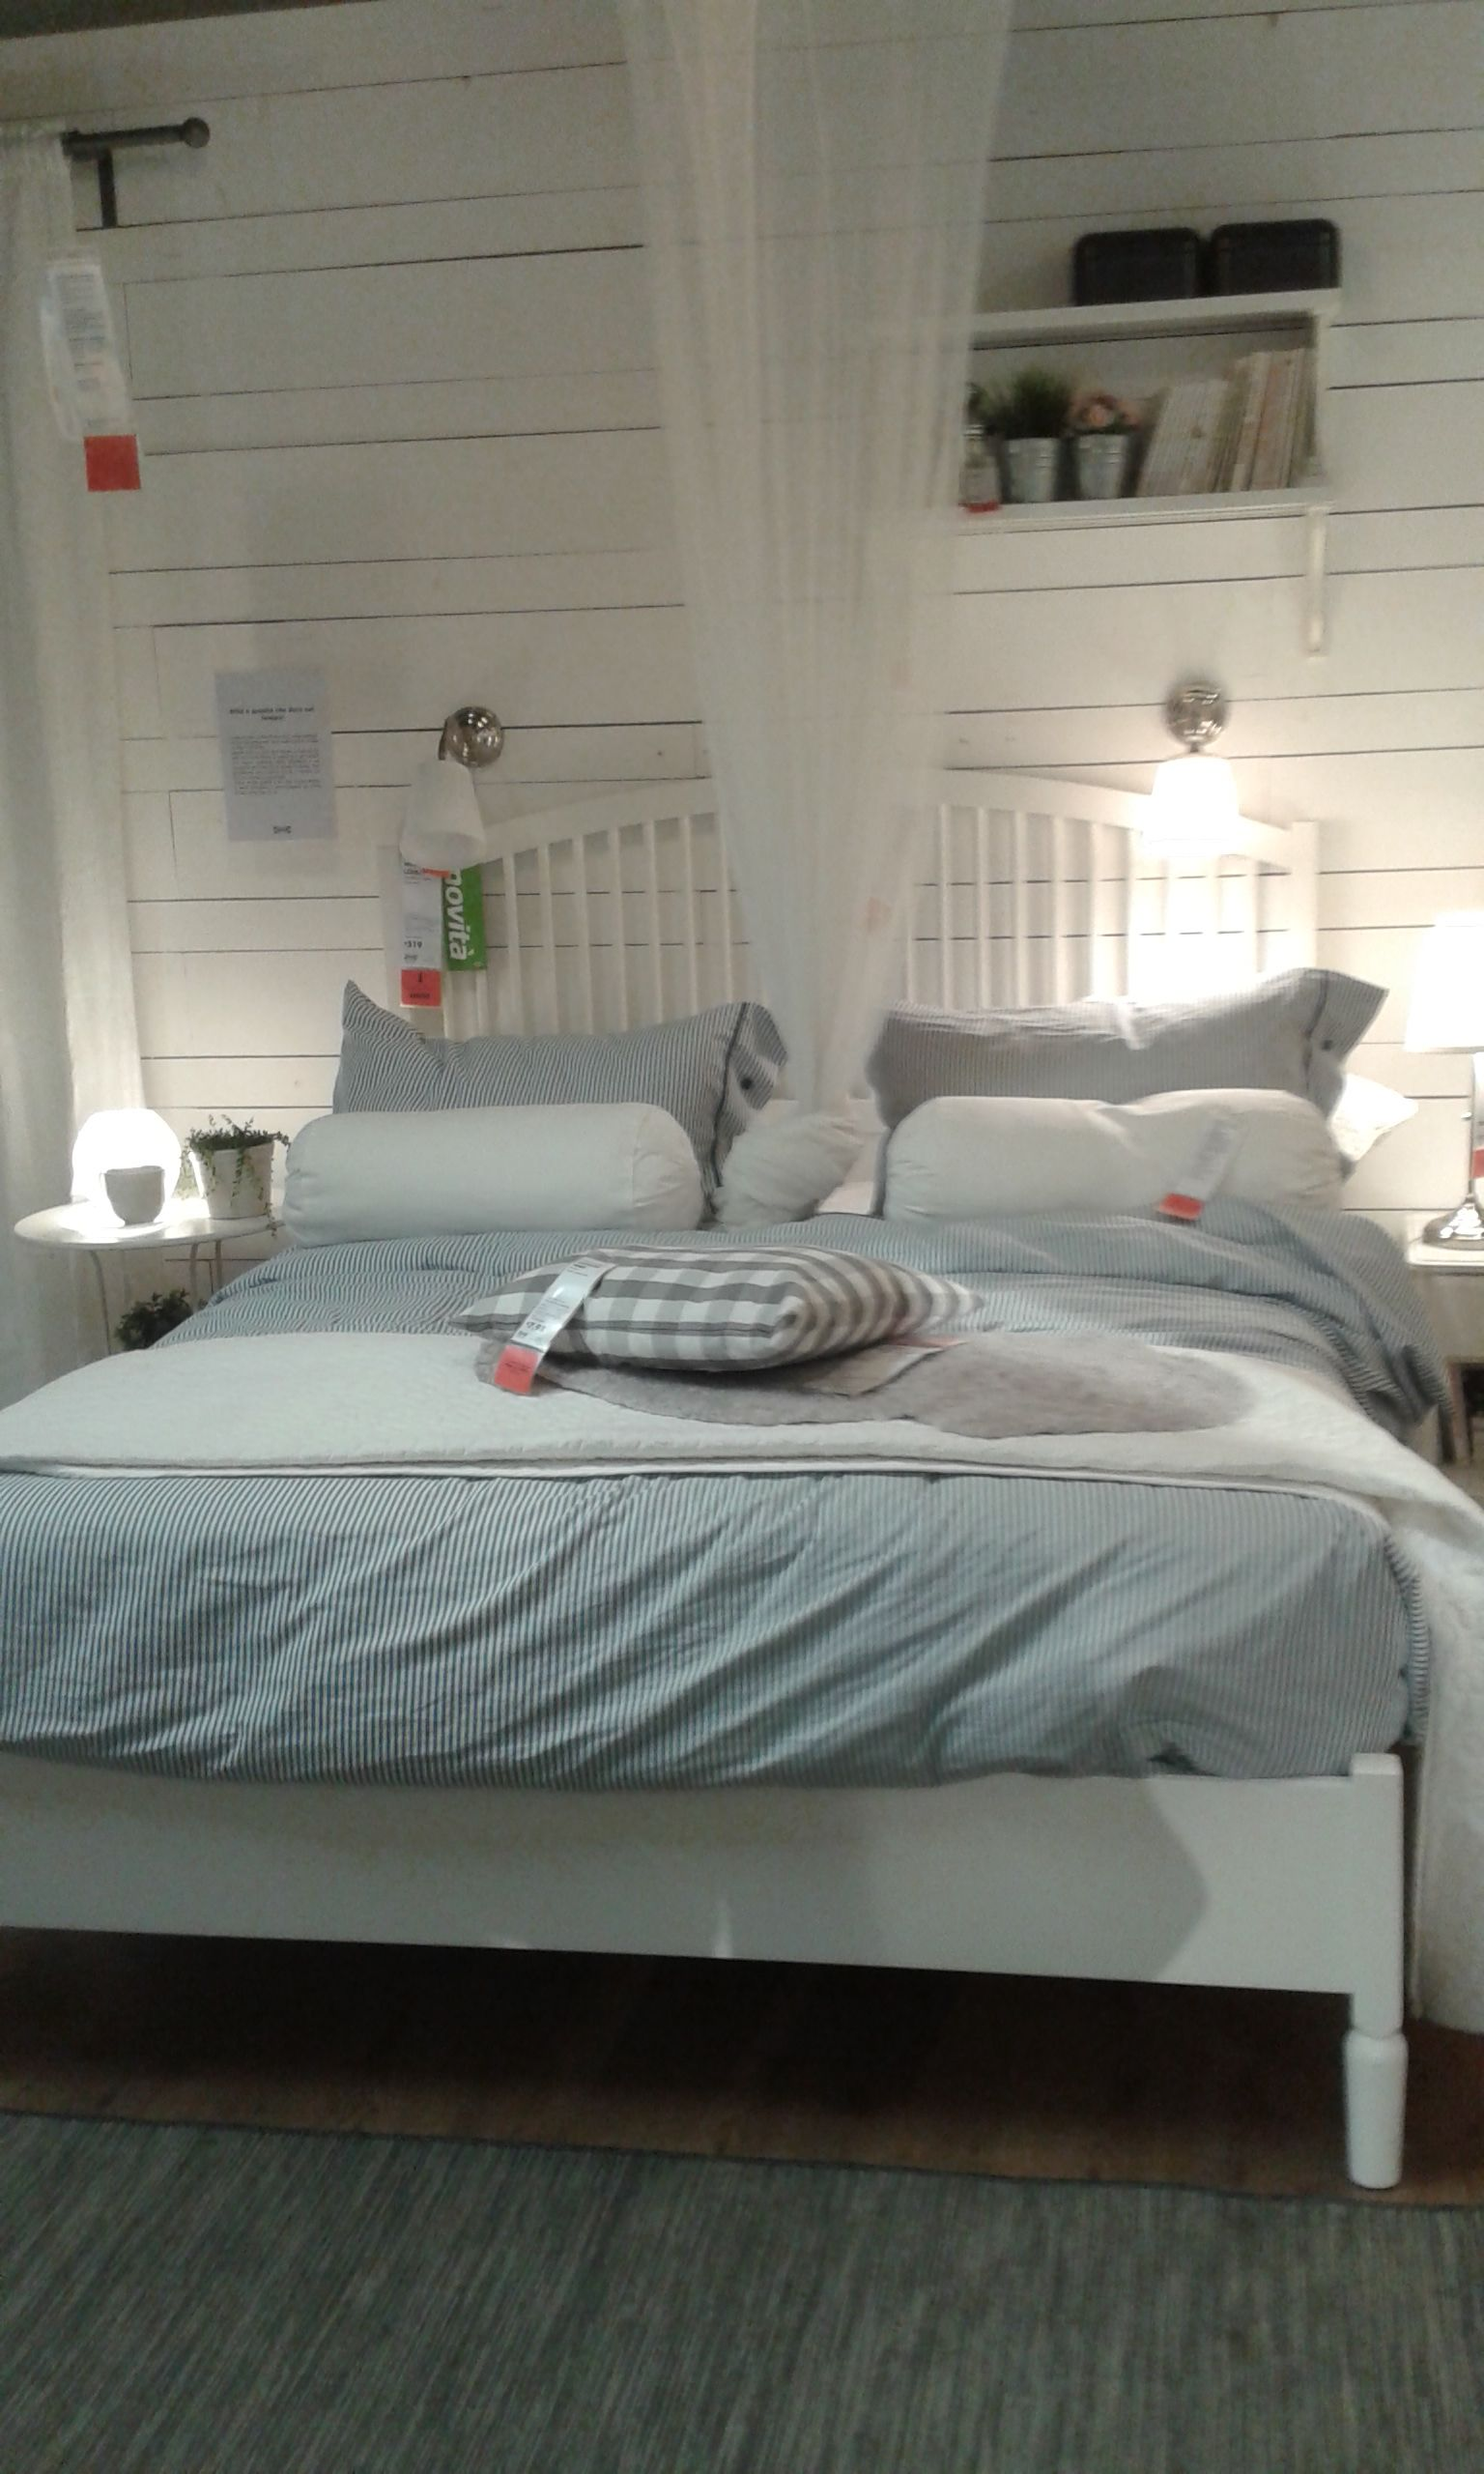 camera da letto IKEA | House | Camera da letto ikea, Letto ...